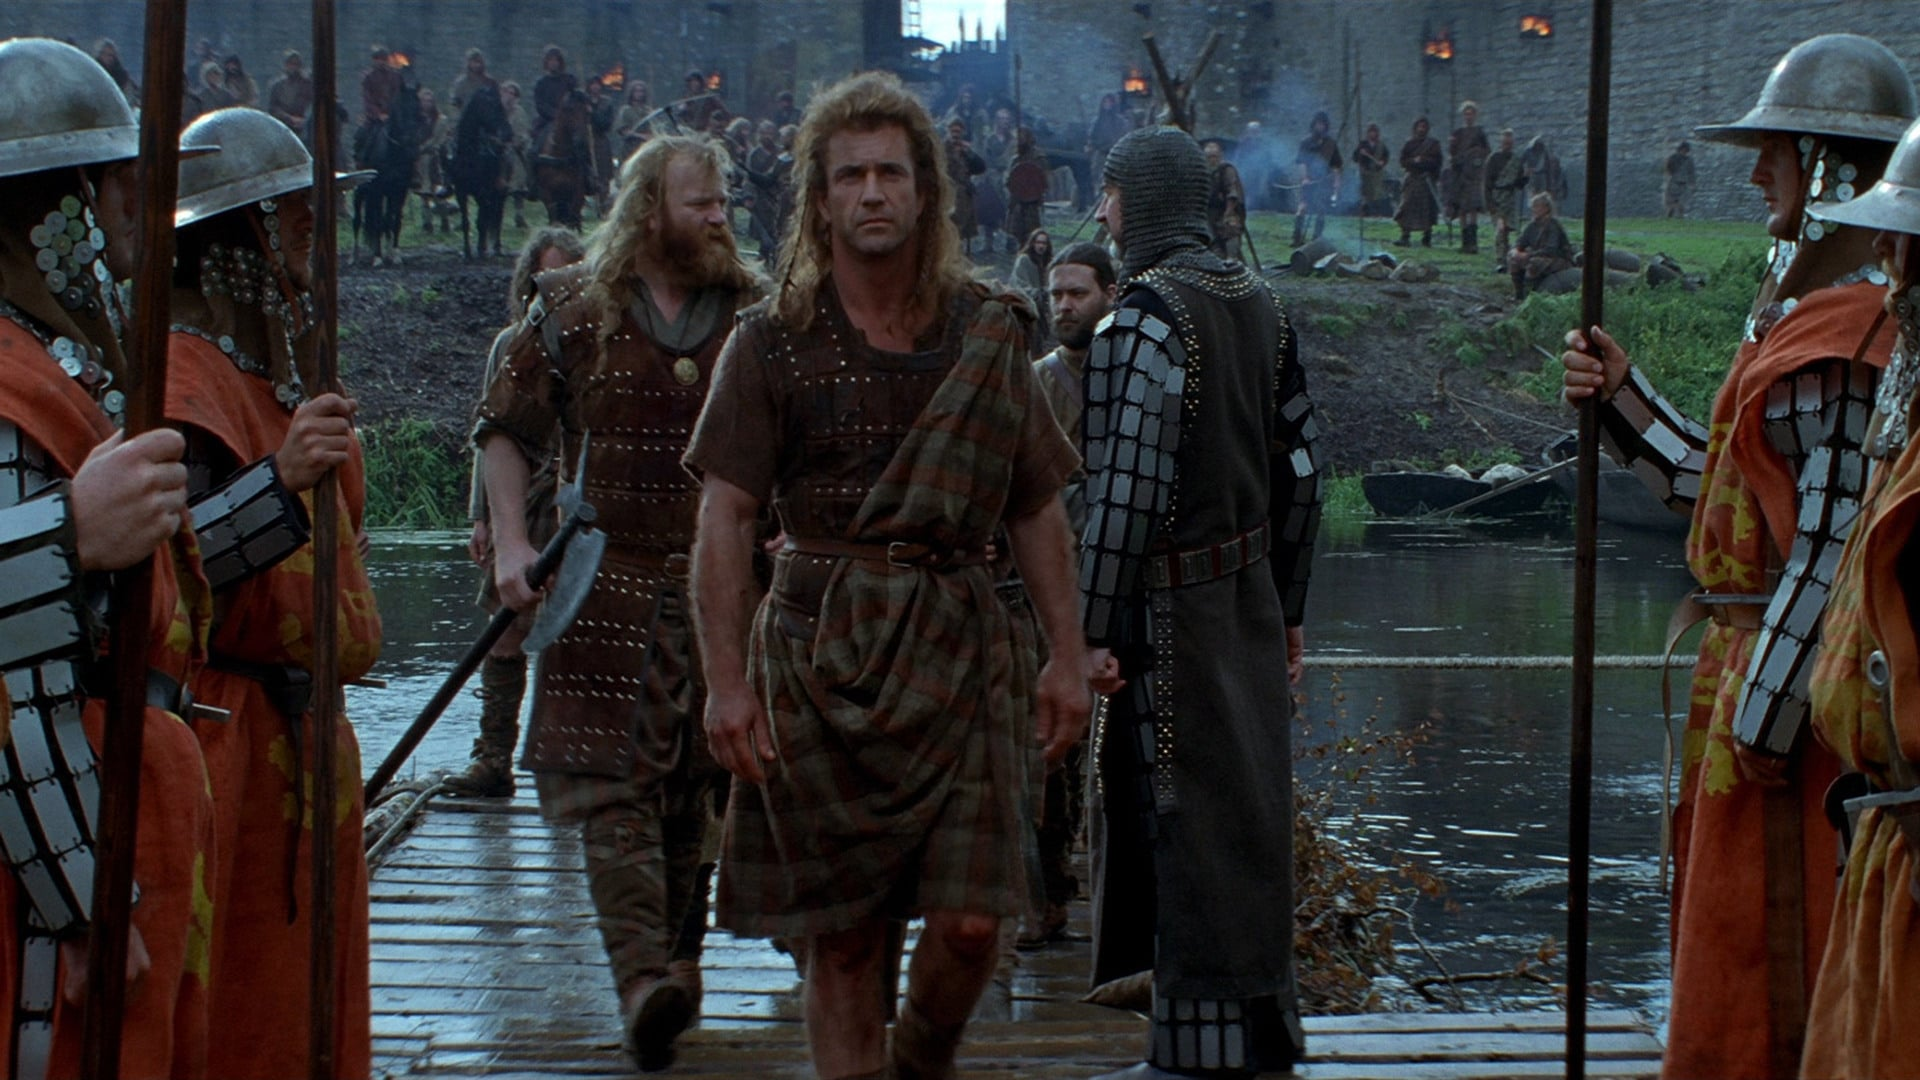 Braveheart backdrop